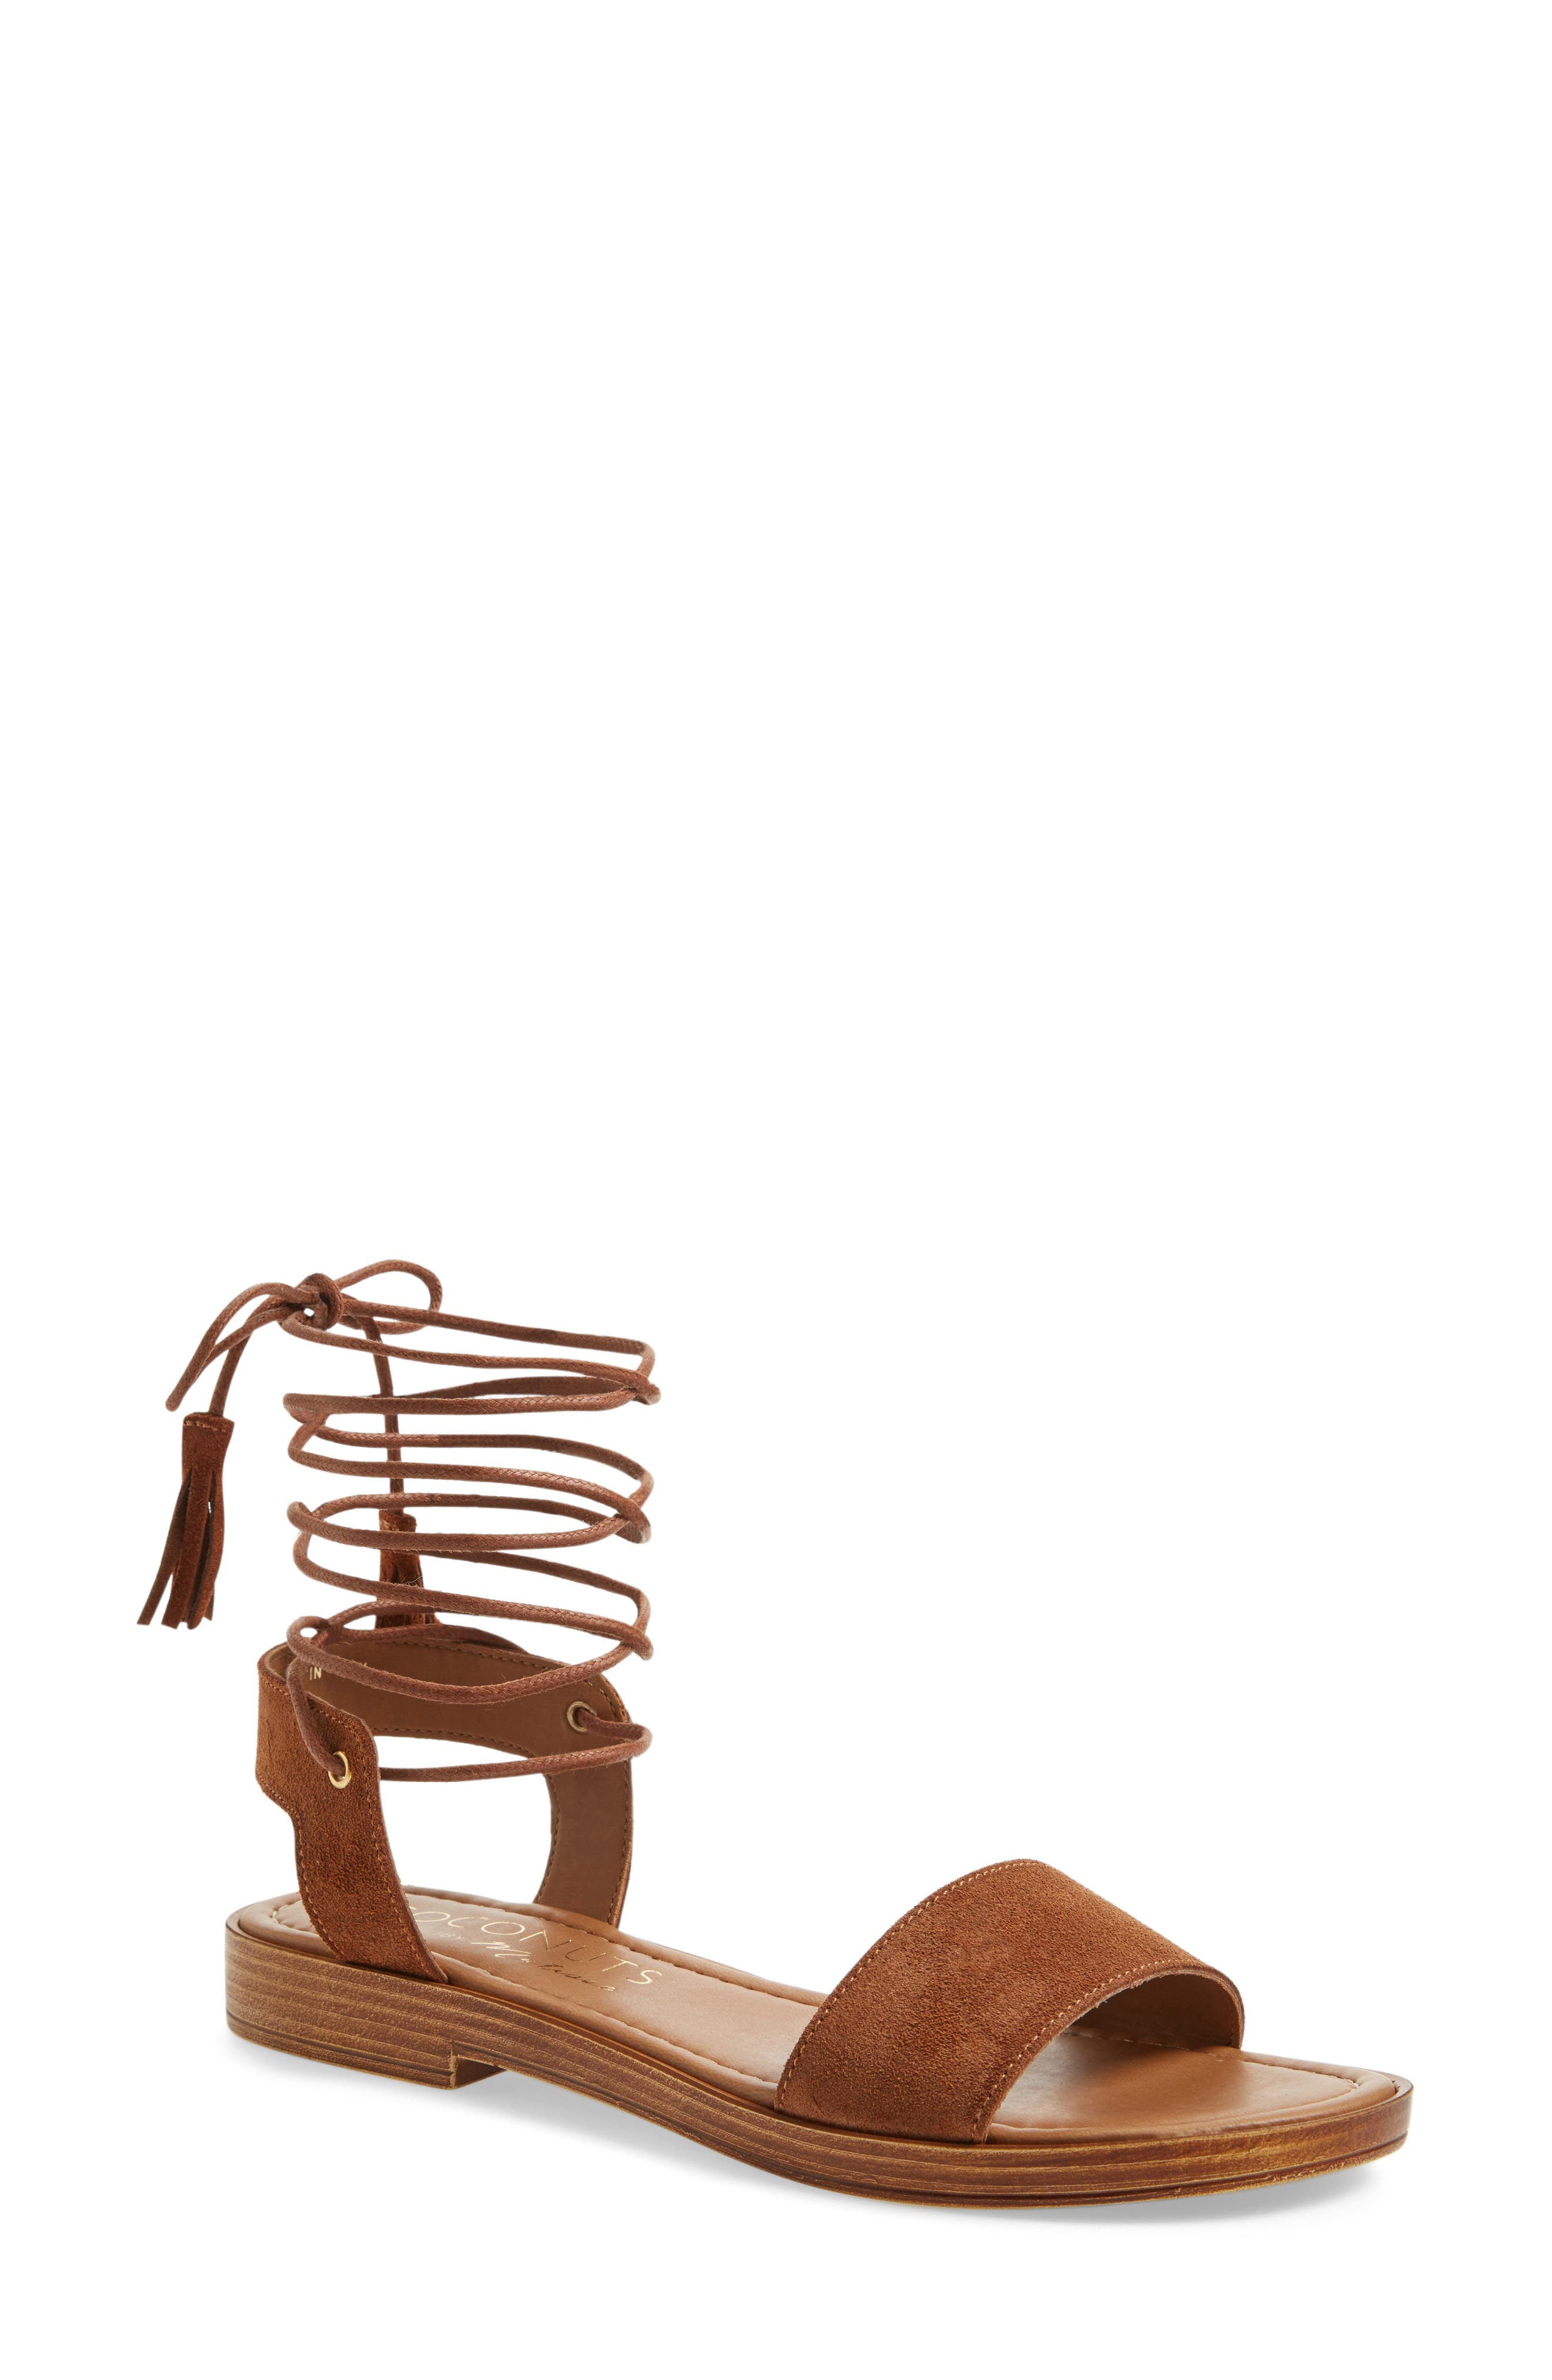 Sting Wraparound Lace Sandal,                             Main thumbnail 1, color,                             238